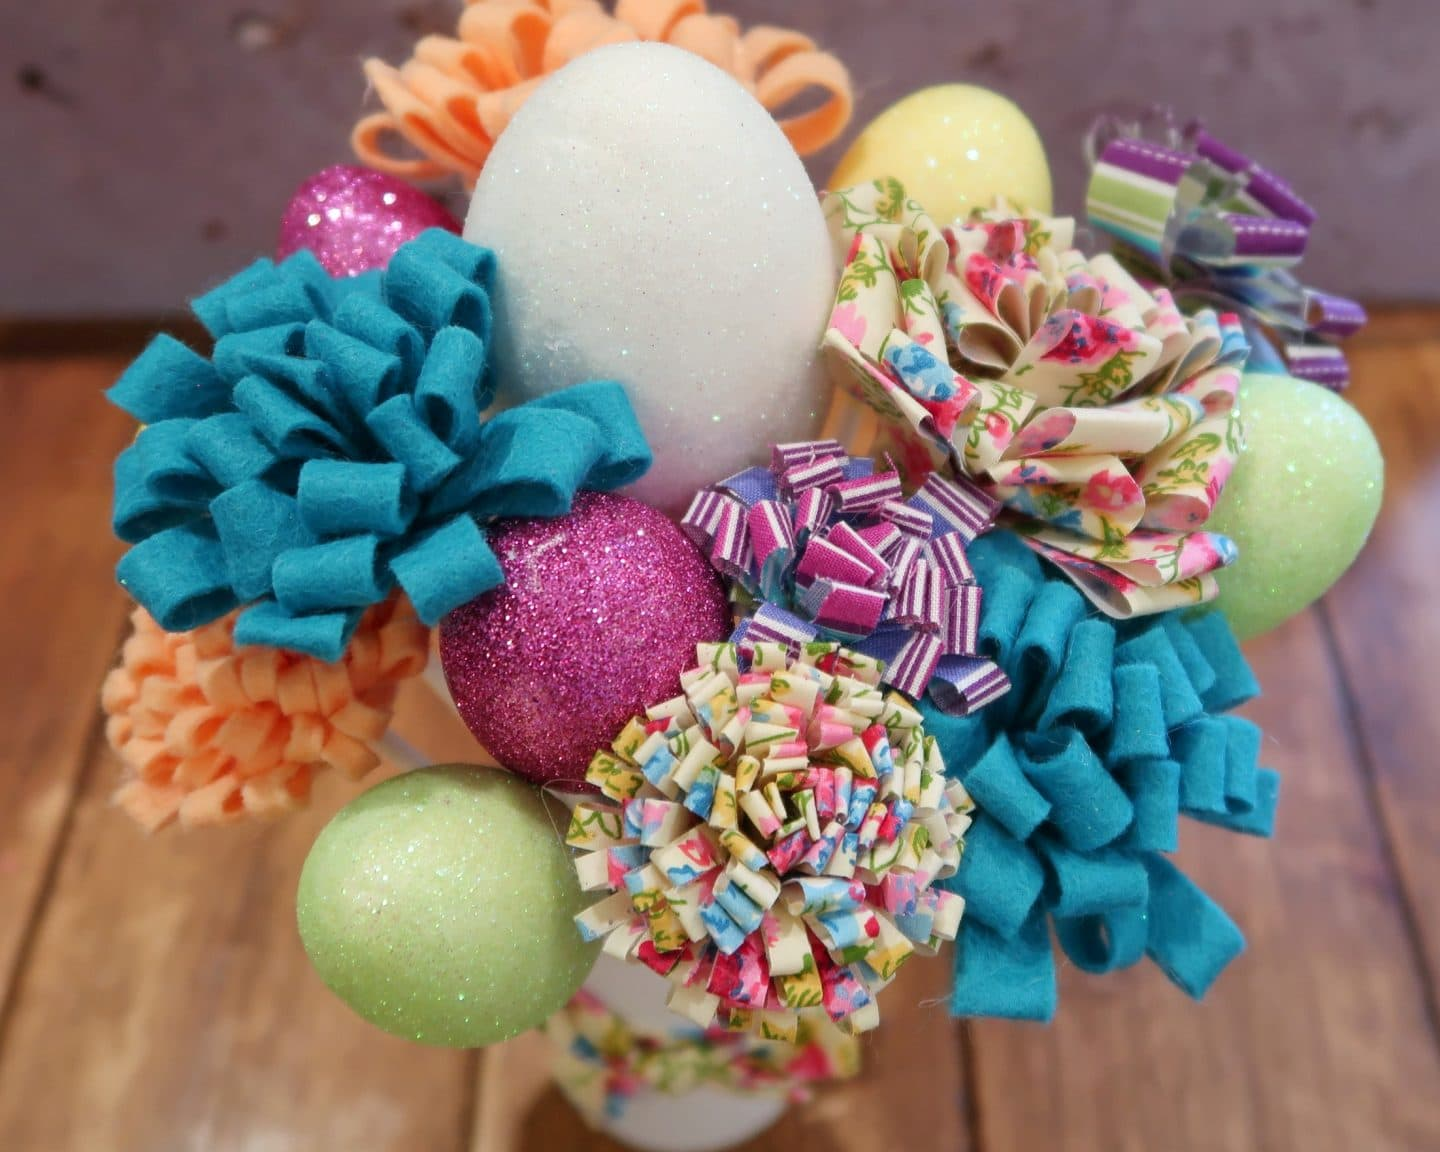 Fabric flowers and glitter eggs from above